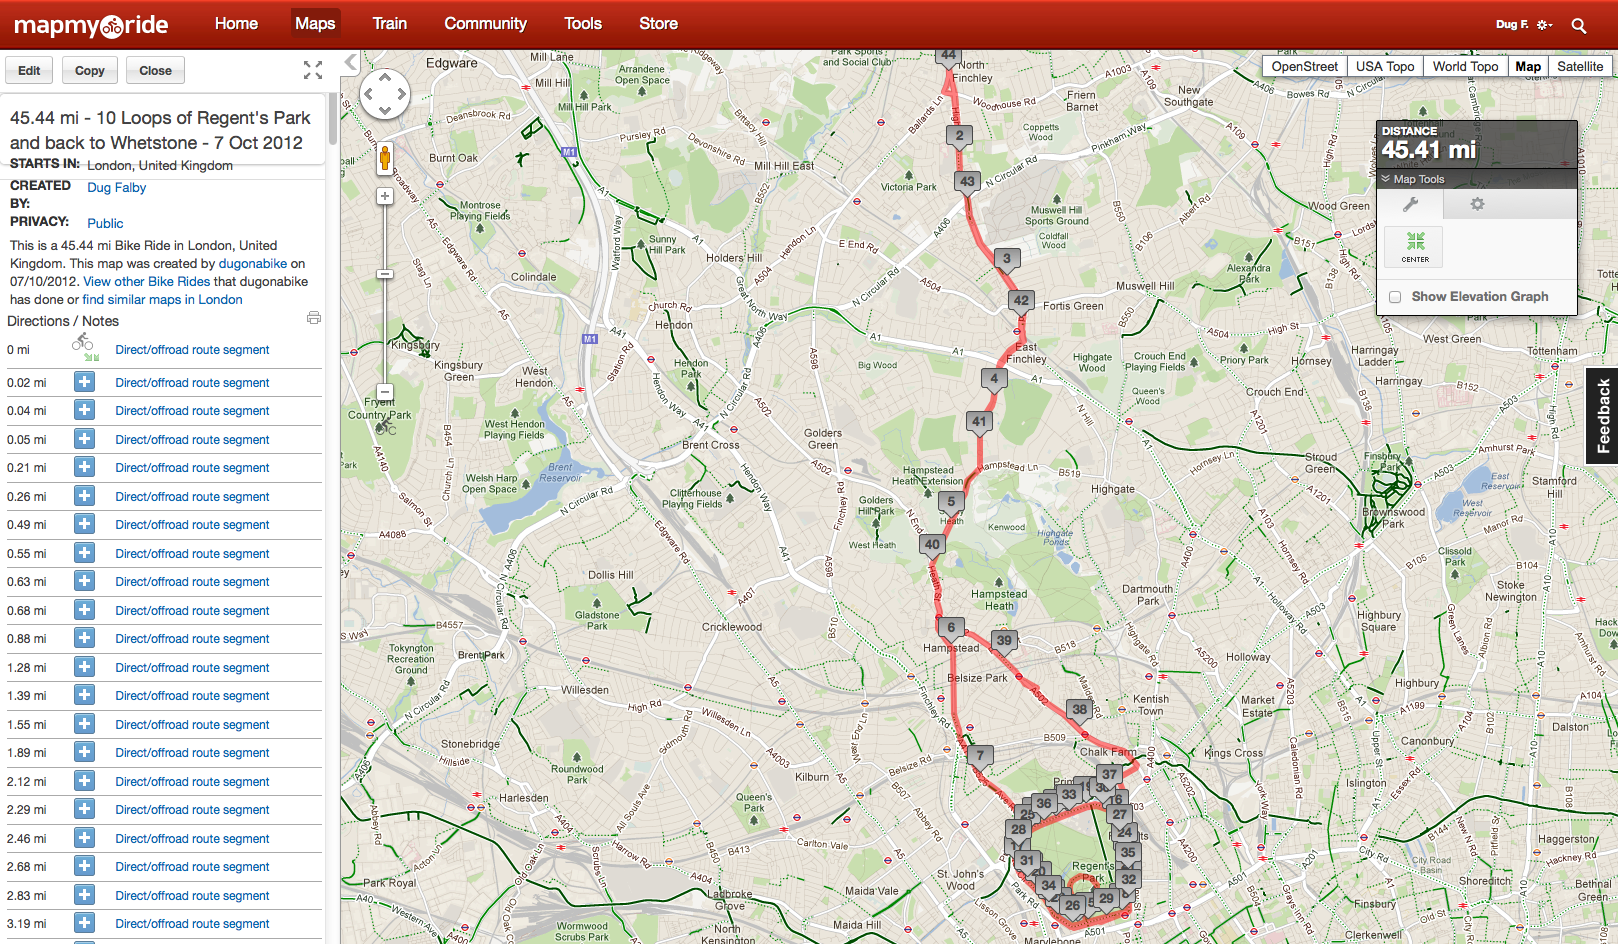 45.44 miles -- -) Looping Regents Park and back to Whetstone